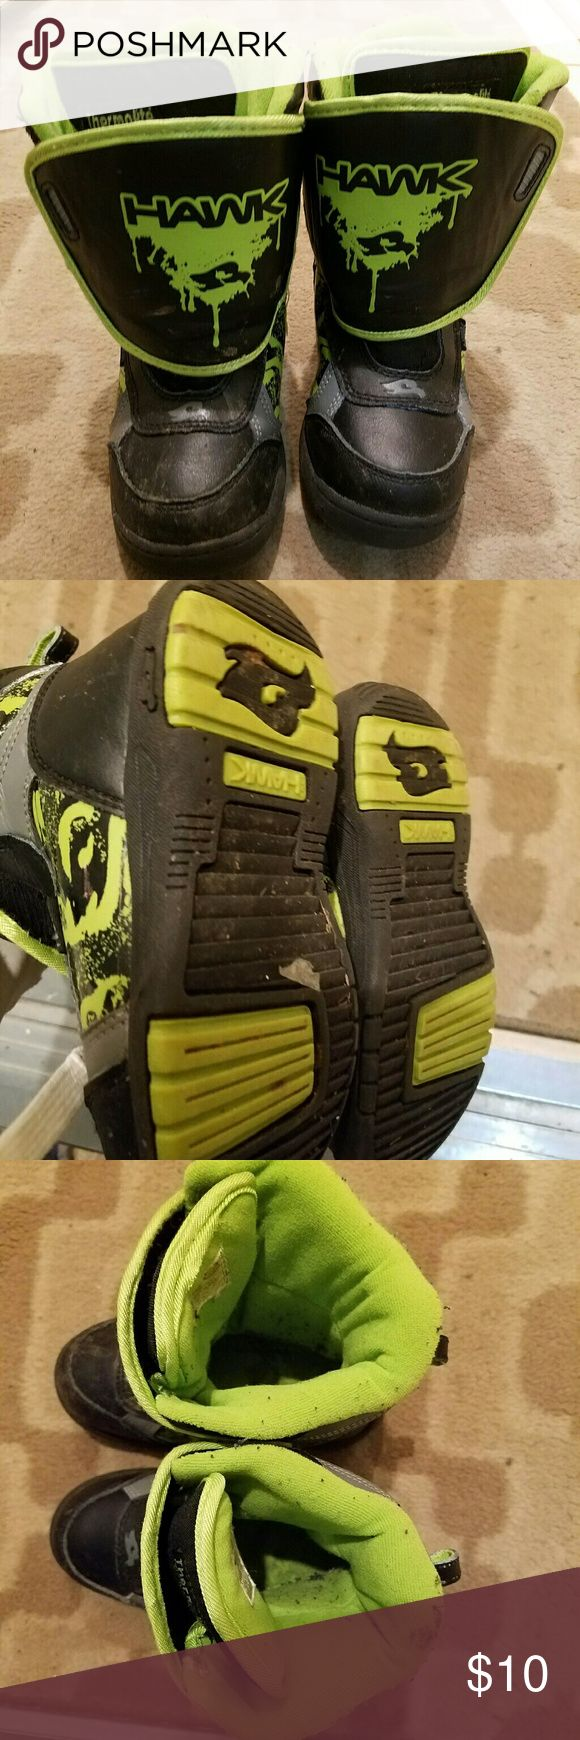 Tony Hawks boys boots Boys boots, barely used, excellent condition Tony Hawk Shoes Rain & Snow Boots